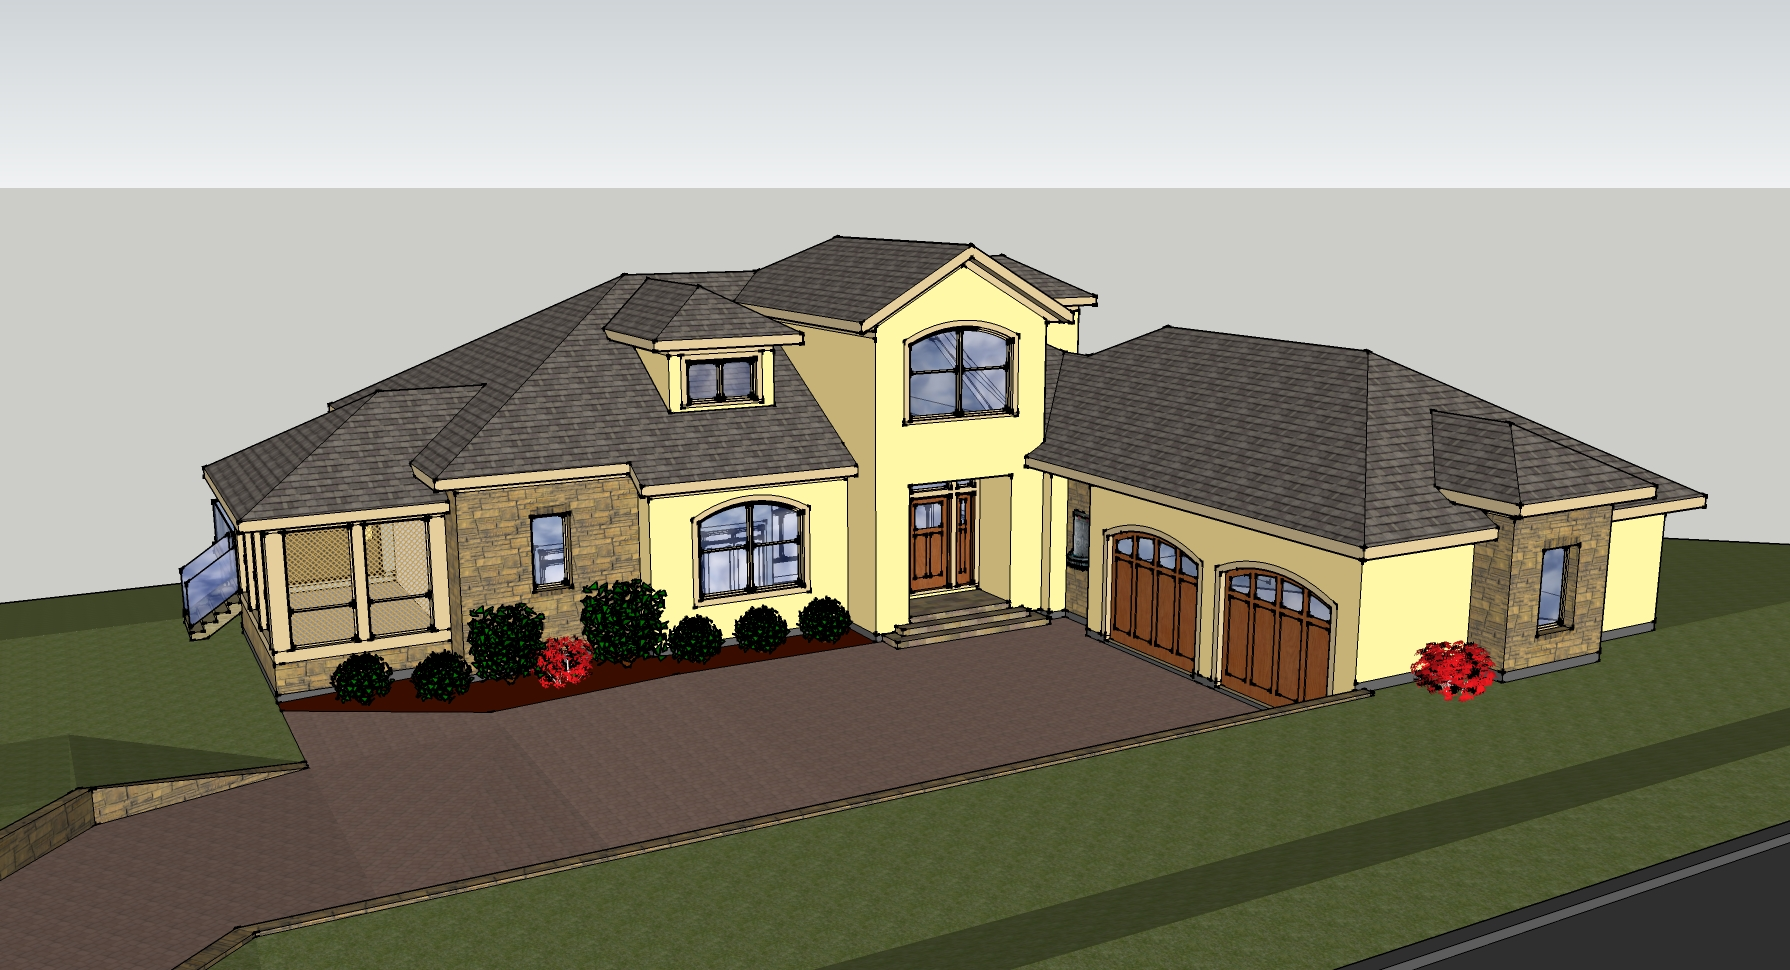 New designs in sketchup for Designer in the house